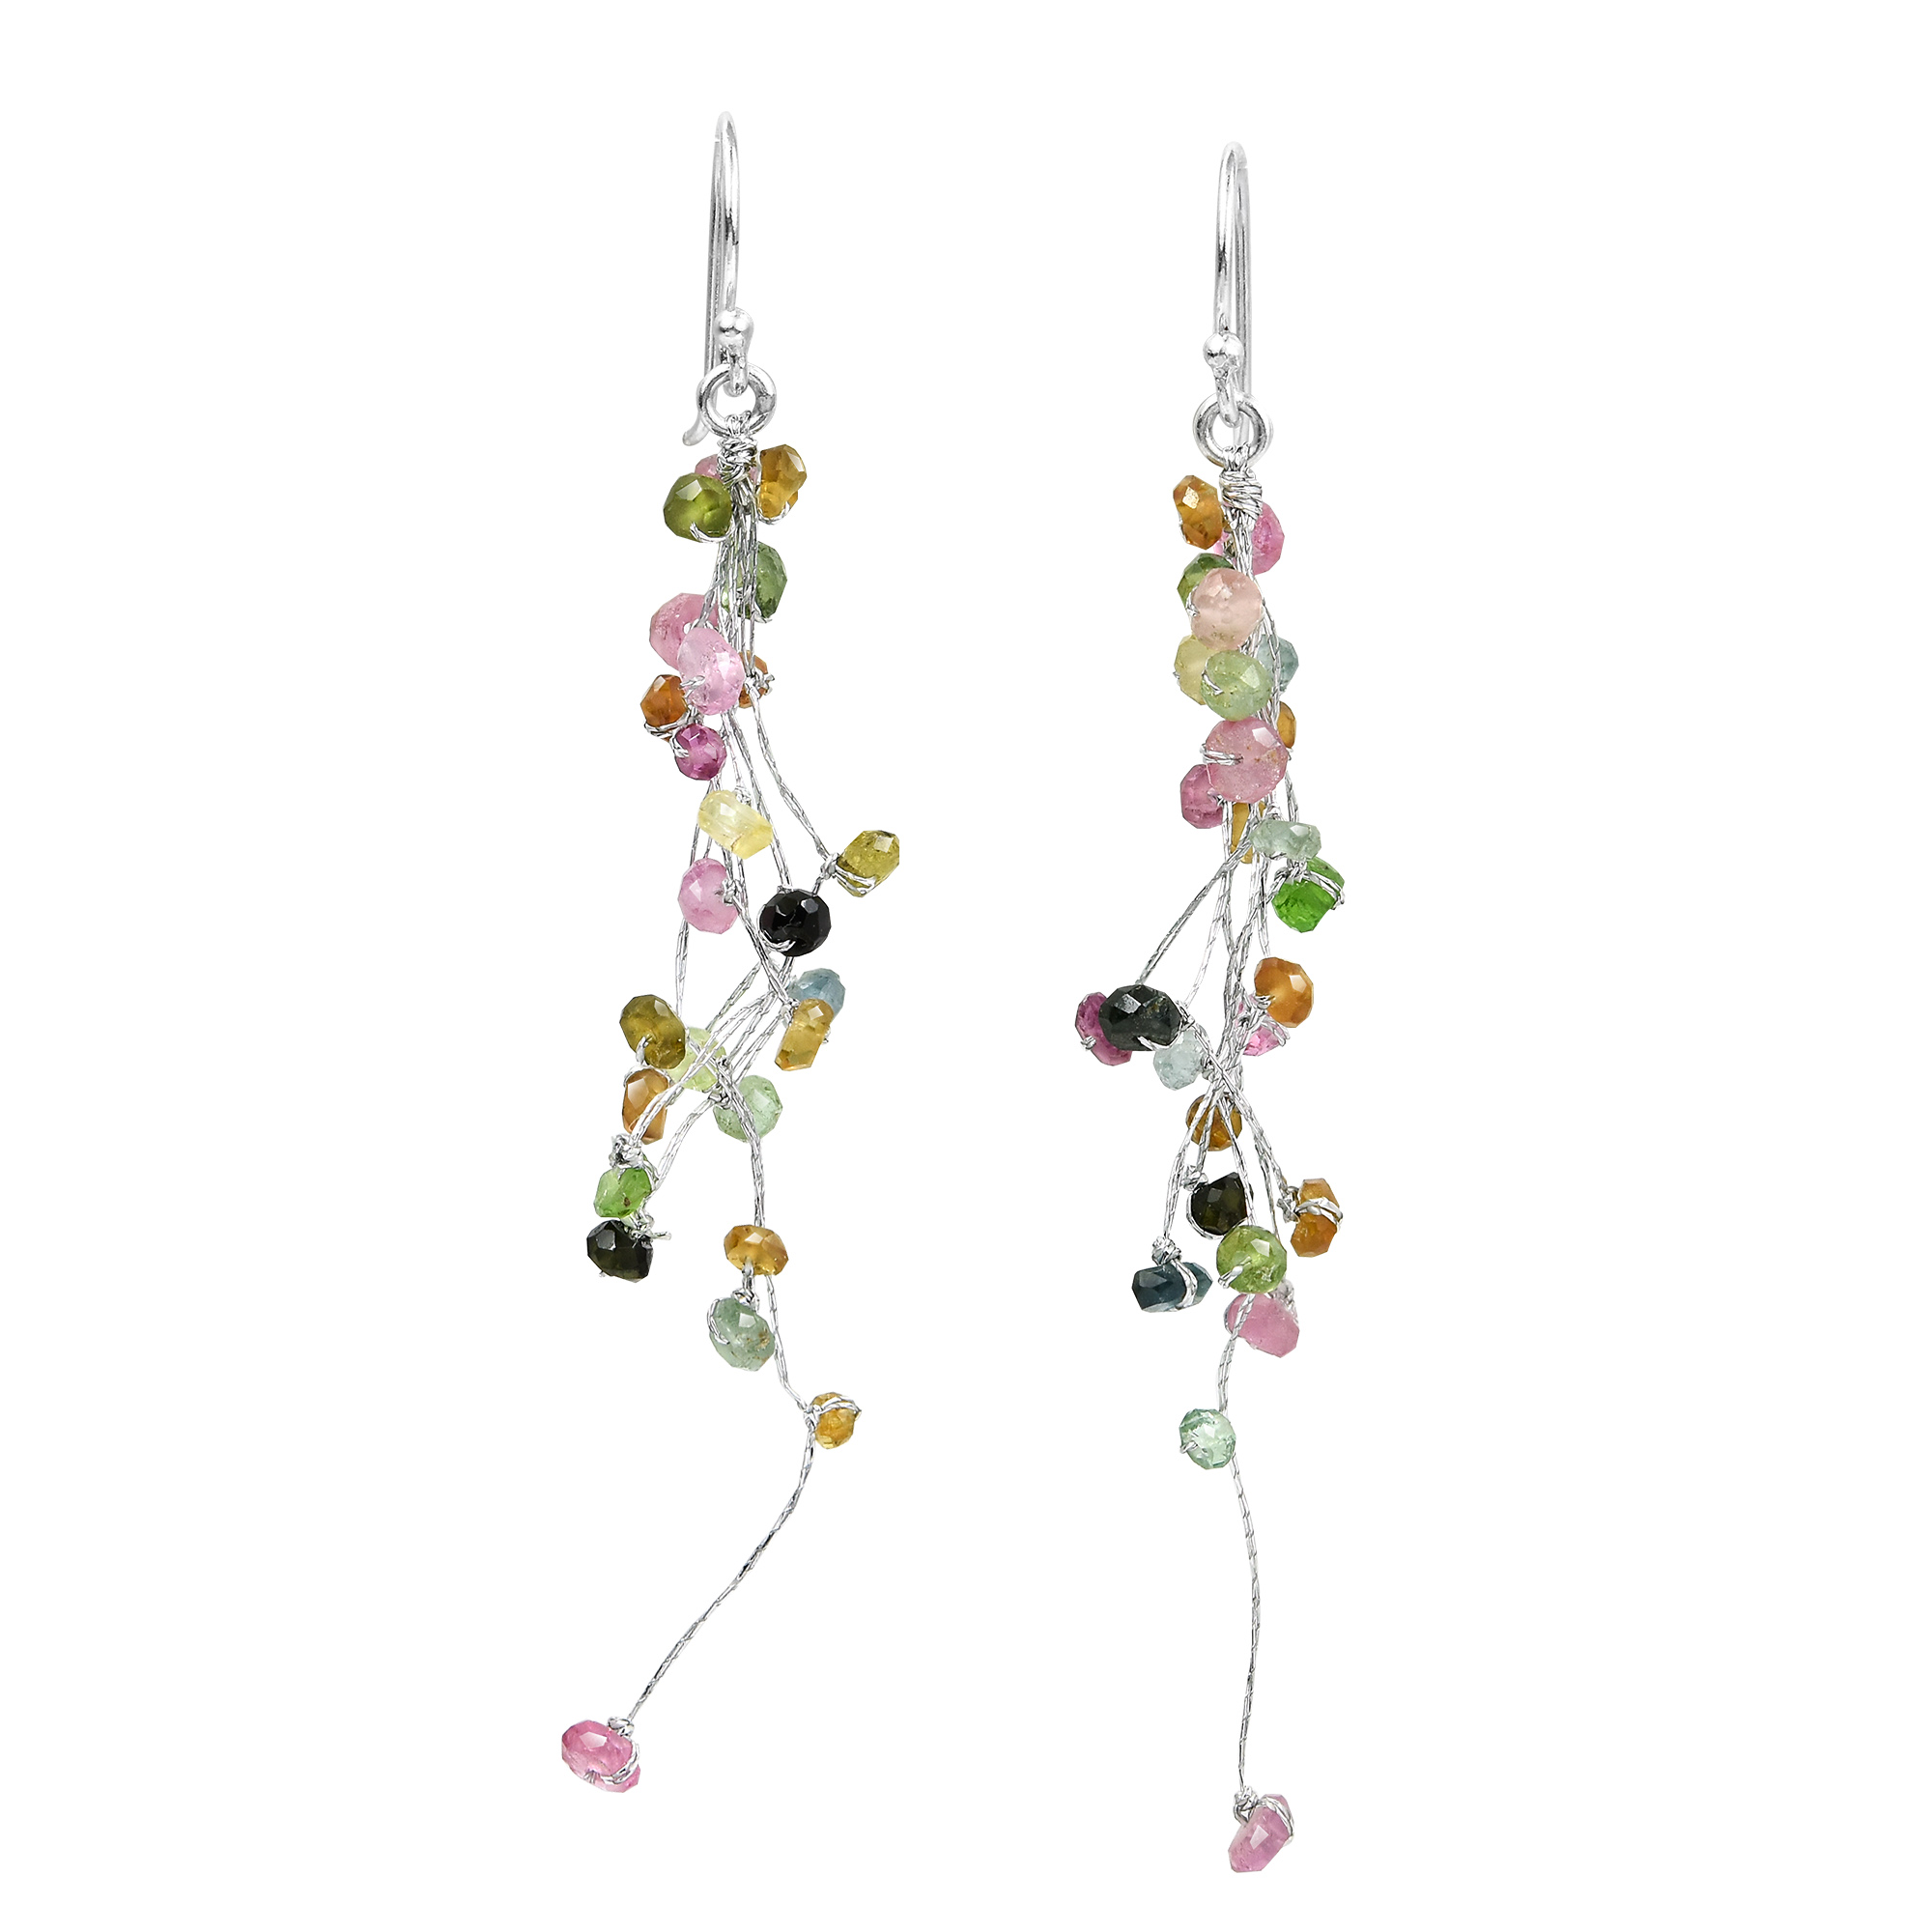 gemstone products made earrings details perfect beautifully multicolor your beauty are and with es will hoop colored charm to handmade a natural copper aeravida accent crafted silver this wire gemstones artisan be stones piece